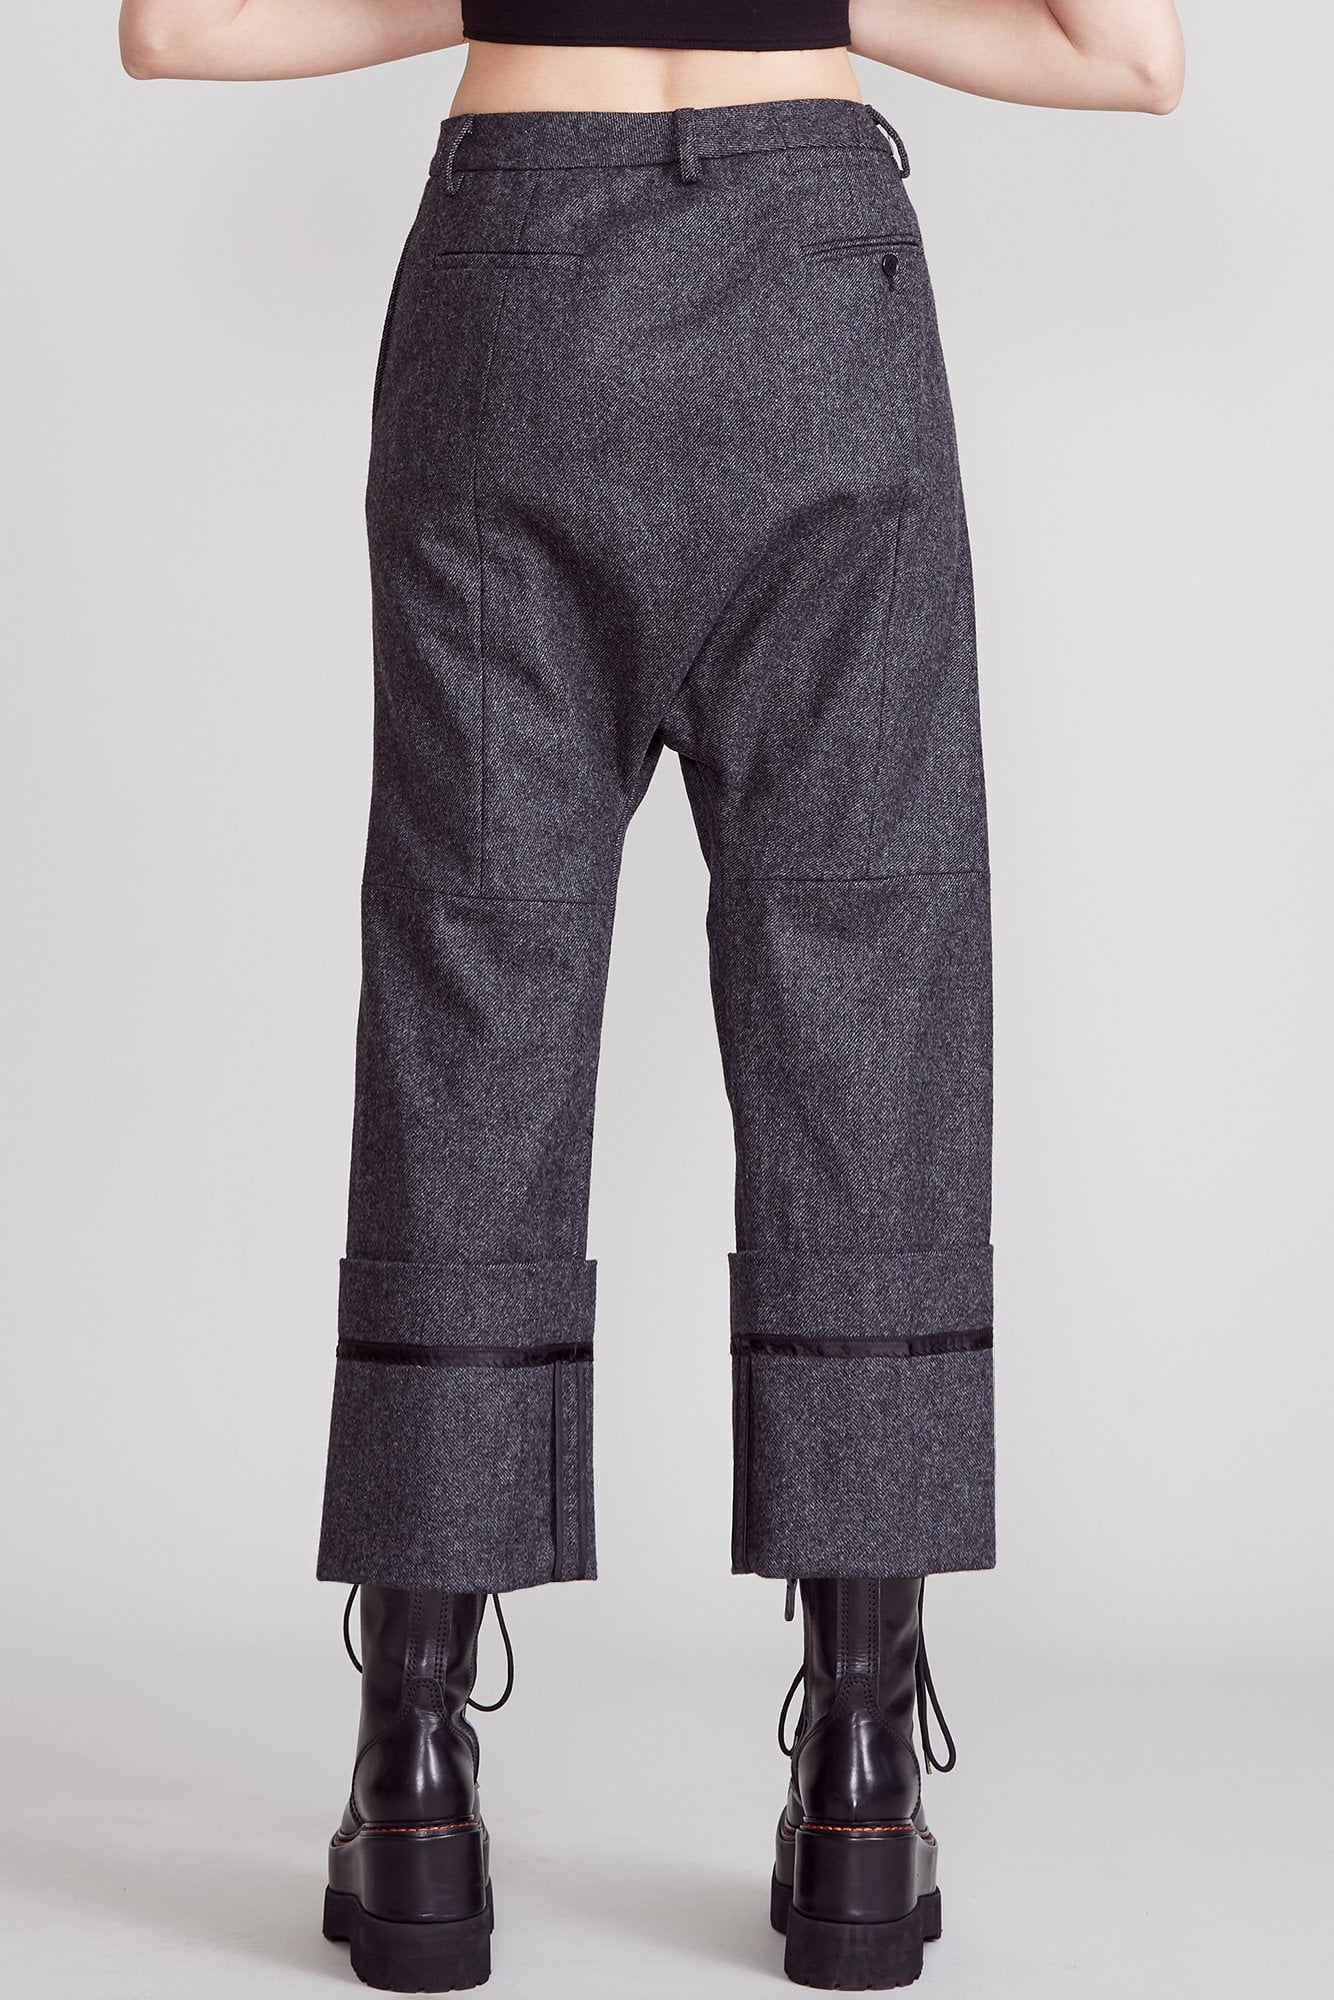 Tailored Crossover with wide Cuff - Charcoal